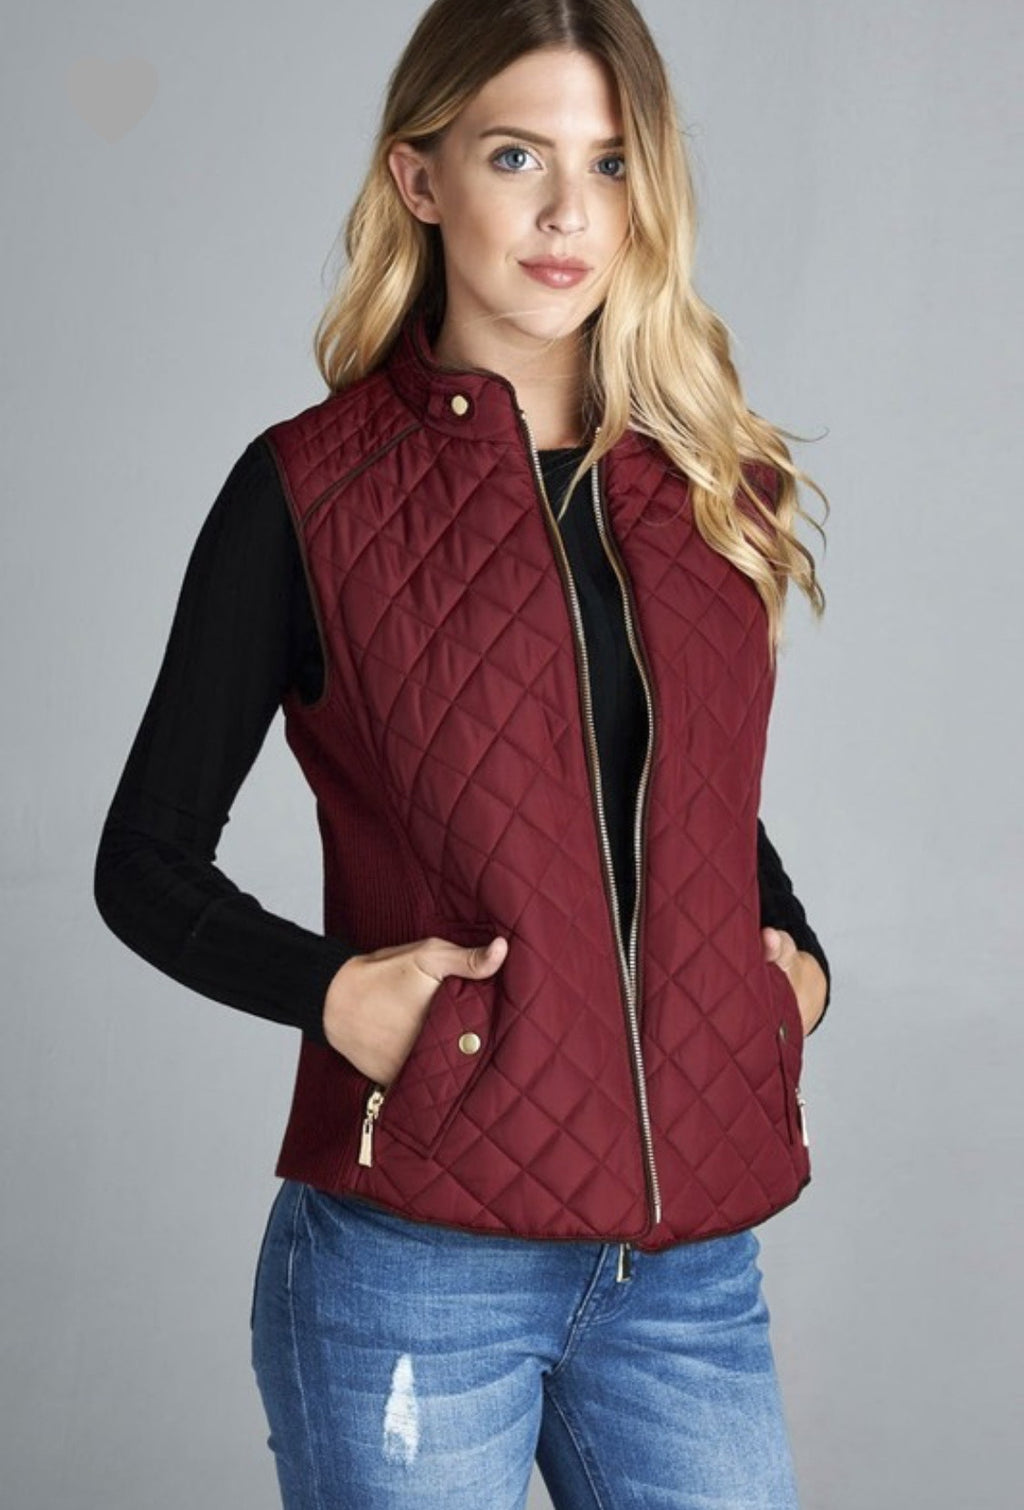 Wine Puffy Vest Plus